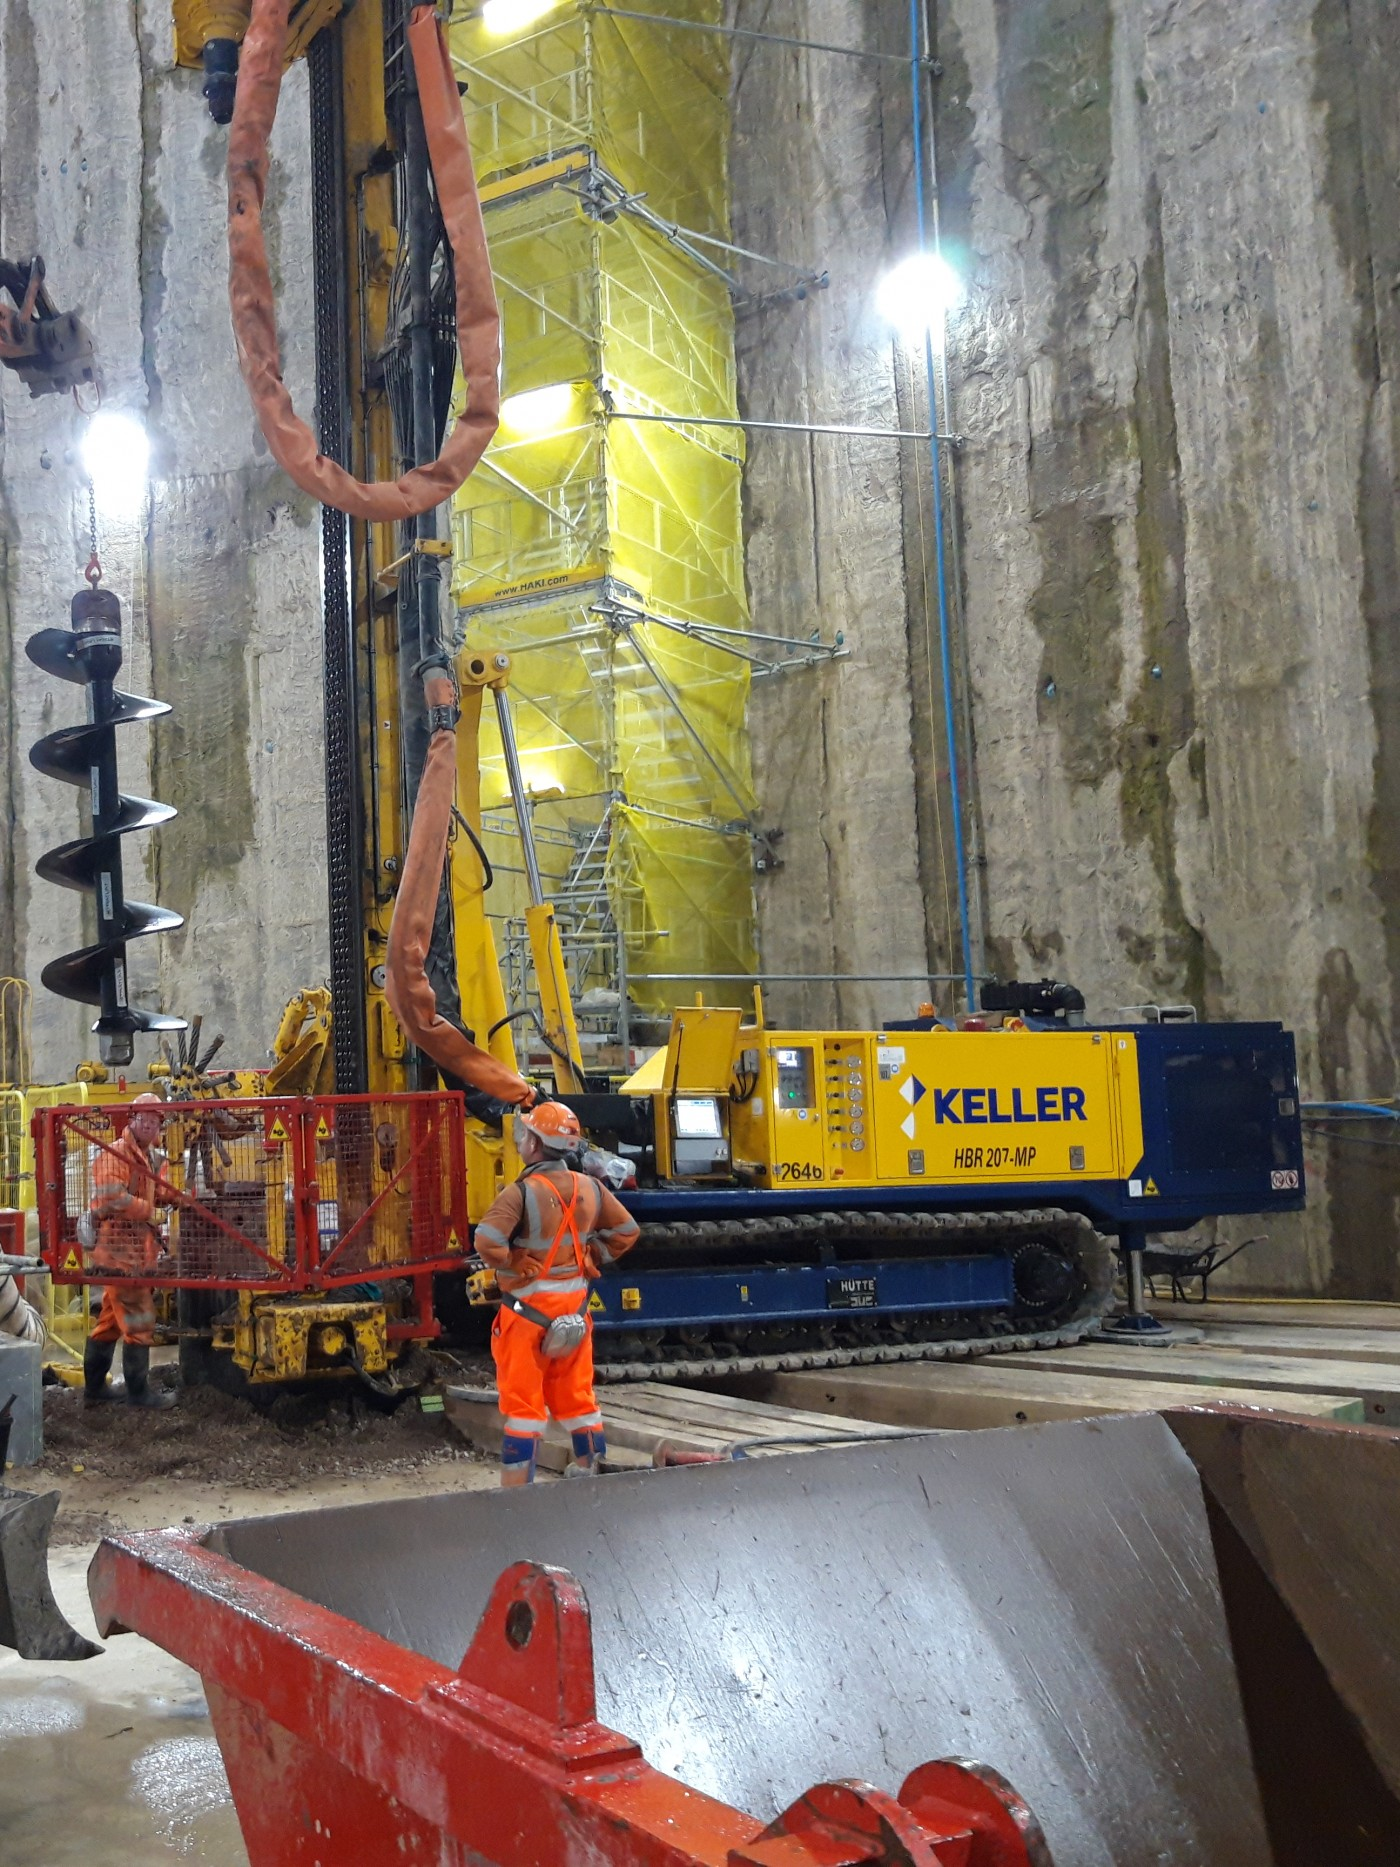 Keller's rig working in the shaft